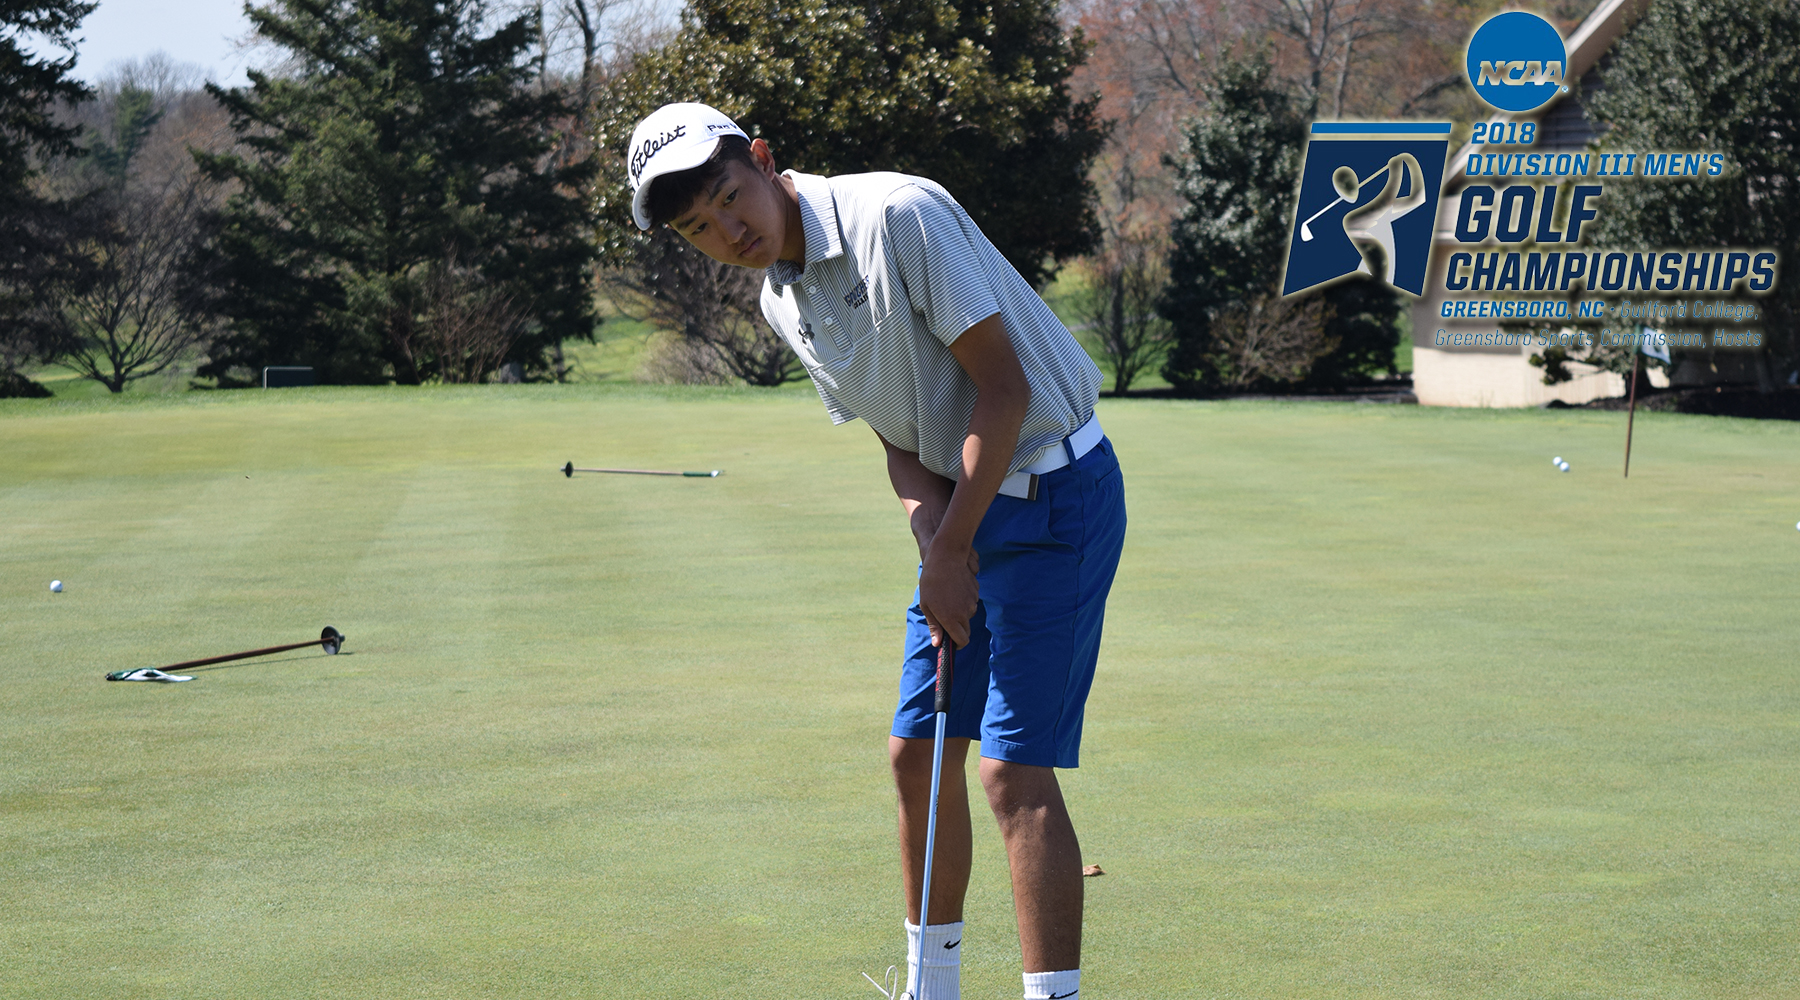 Men's Golf Gears Up for 2018 NCAA Division III Championships